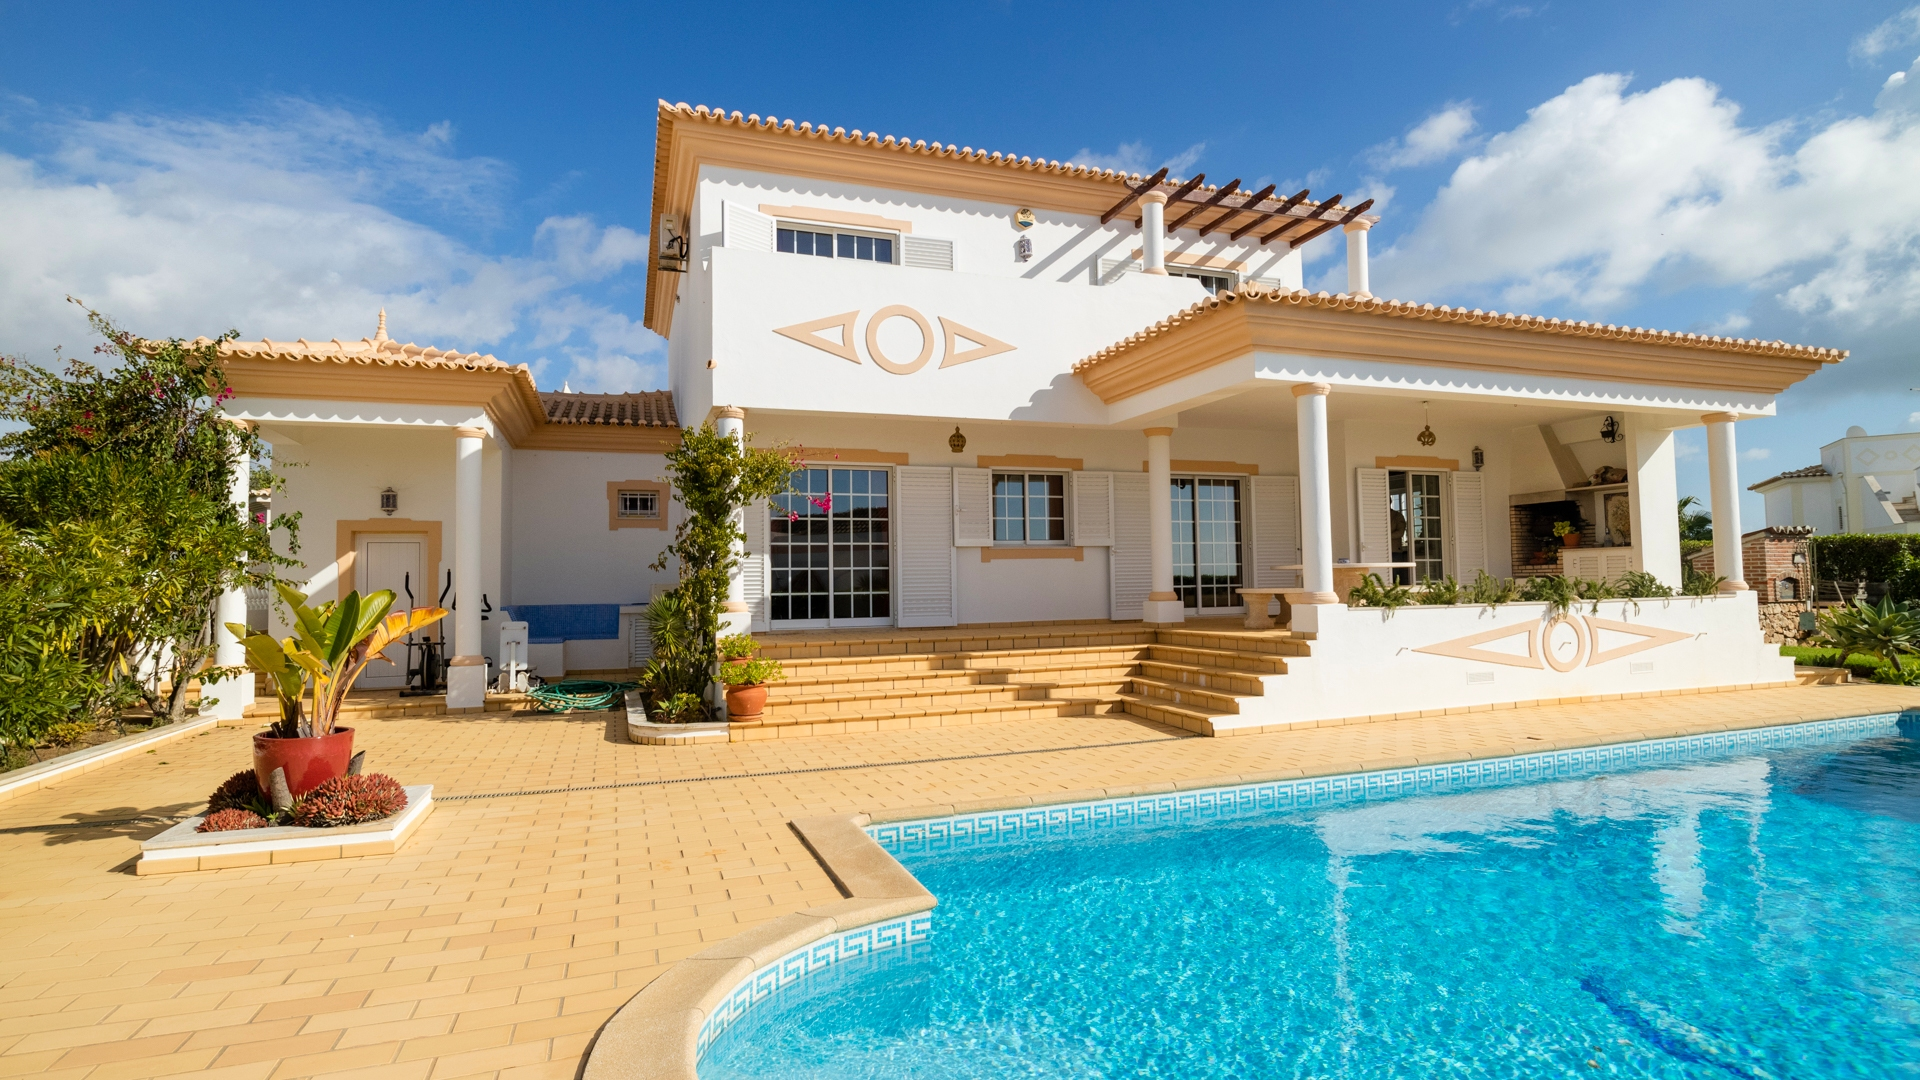 South Facing 4 Bedroom Villa with Sea Views, Albufeira | VM1278 This spacious villa has a large pool and sea views, it is close to amenities and would make a perfect investment property for holiday rentals.